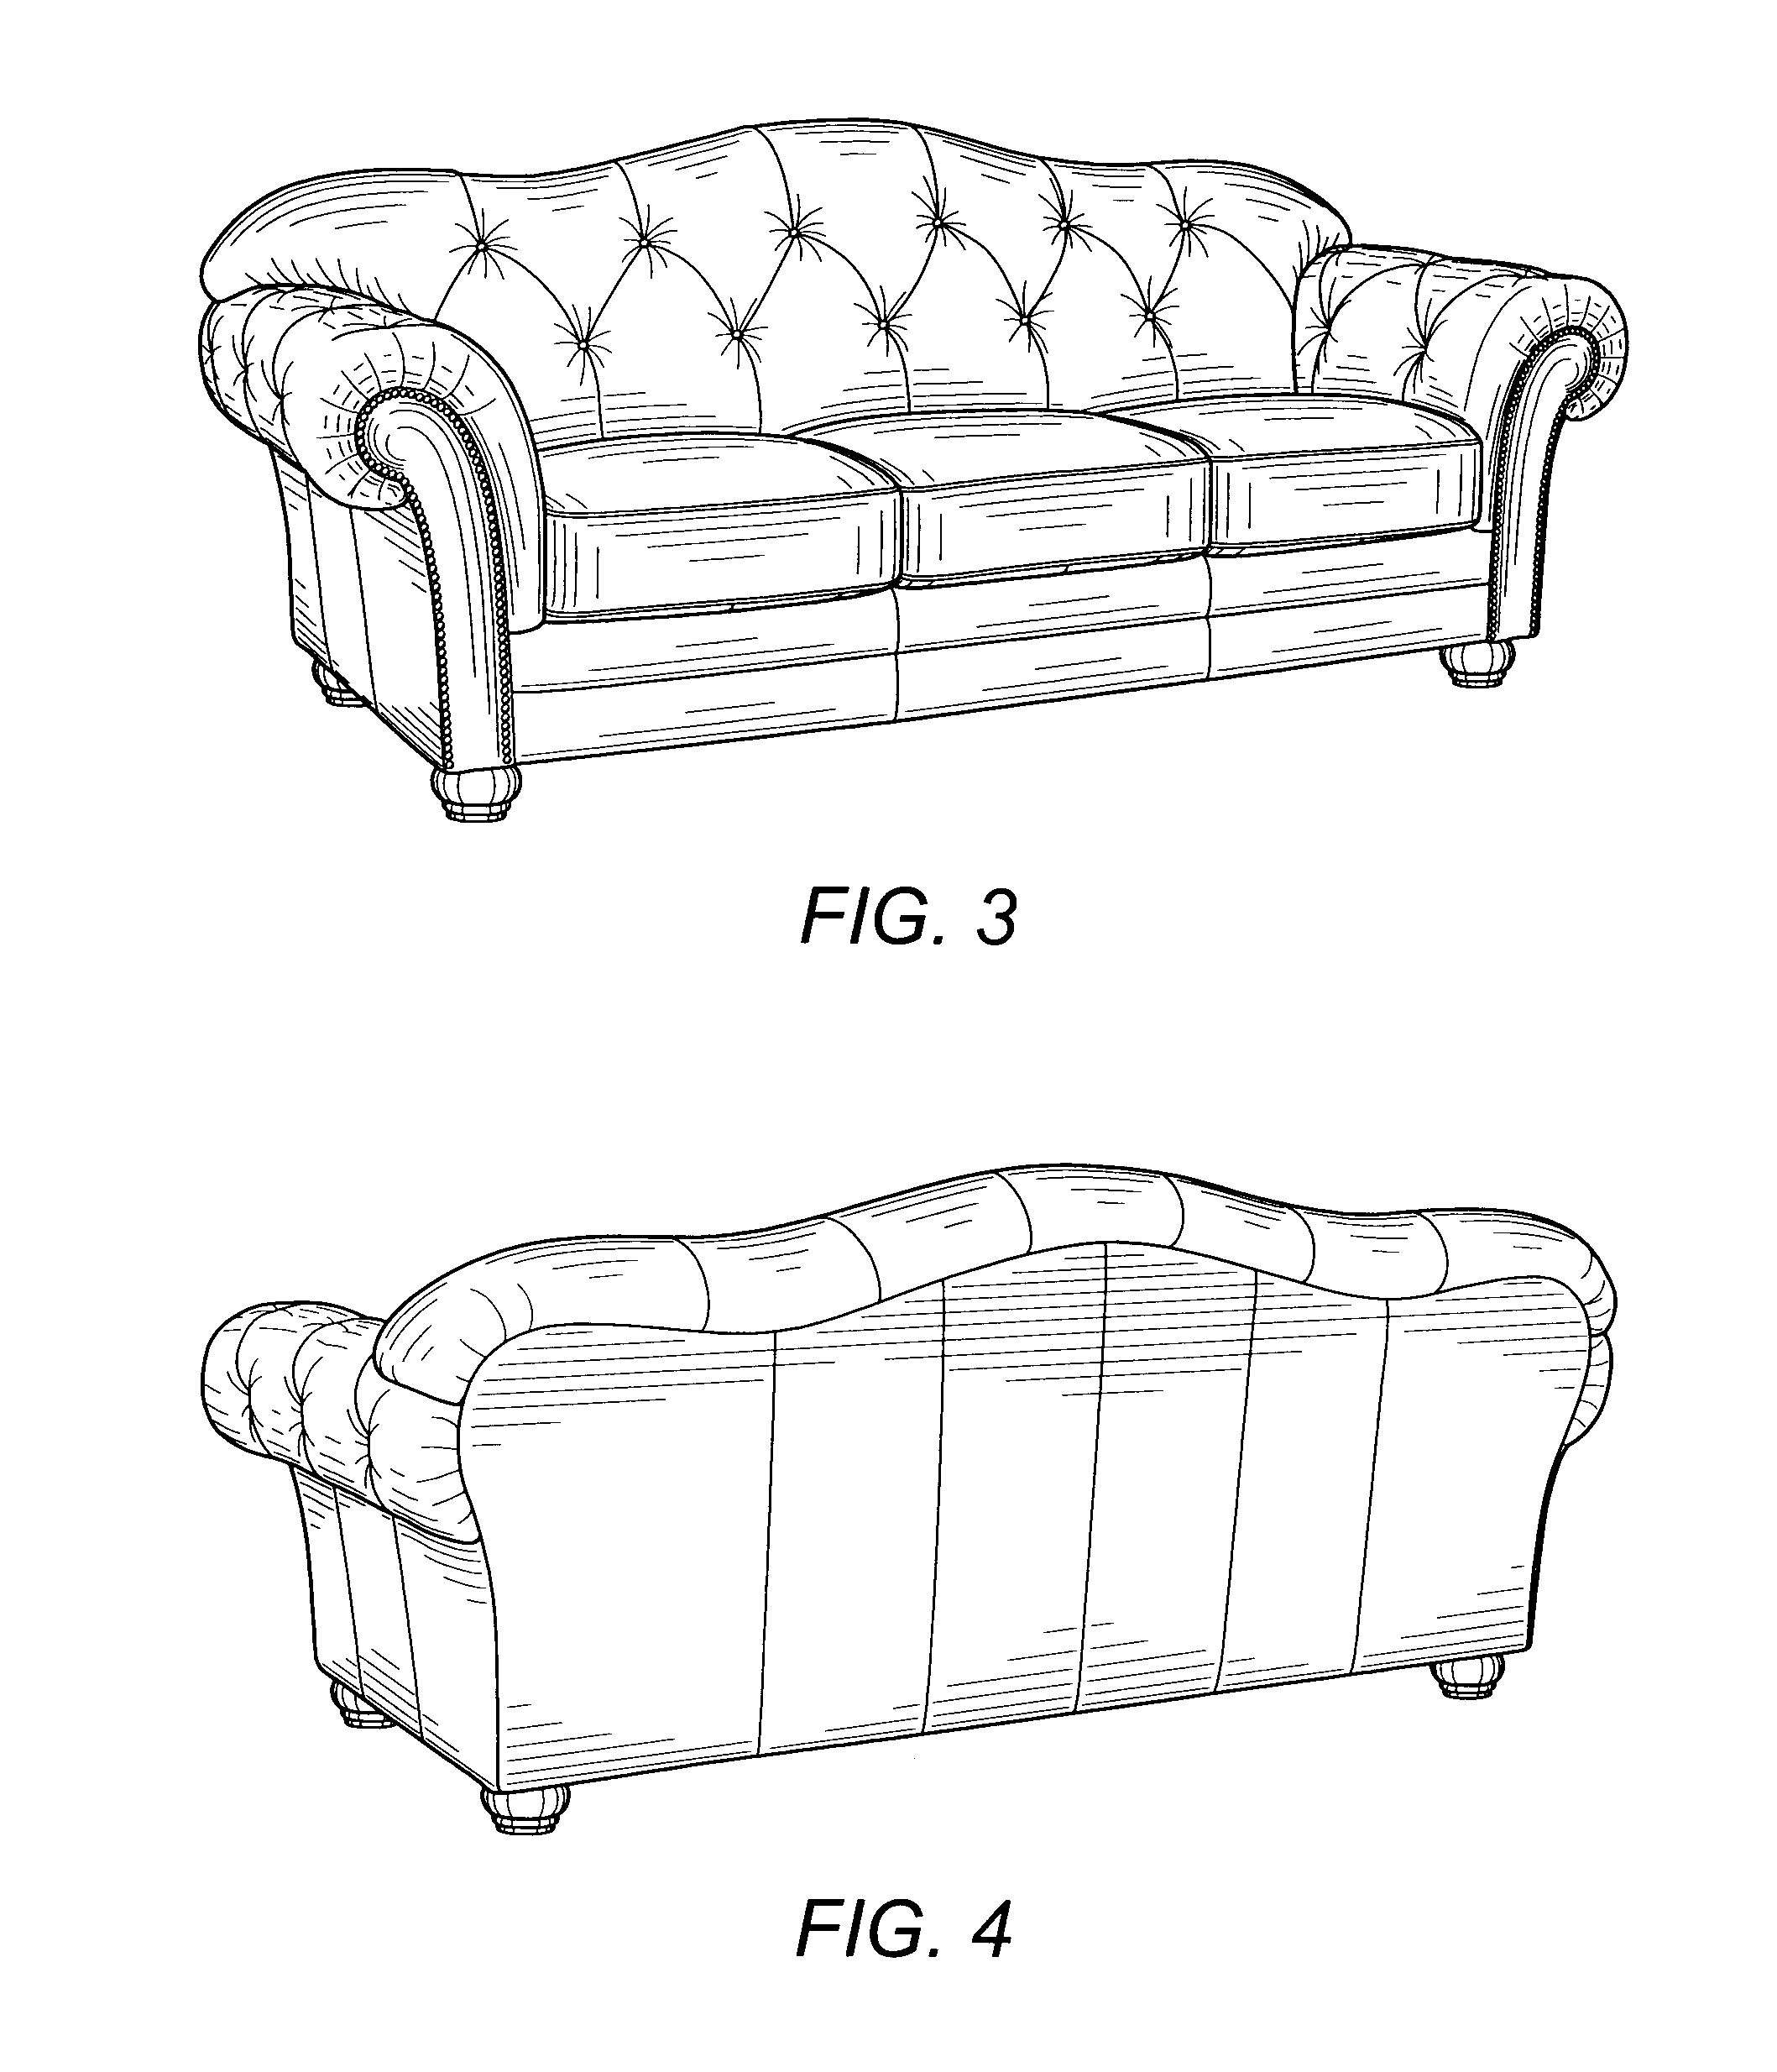 Plan And Elevation Of Sofa : Patent usd sofa google patents